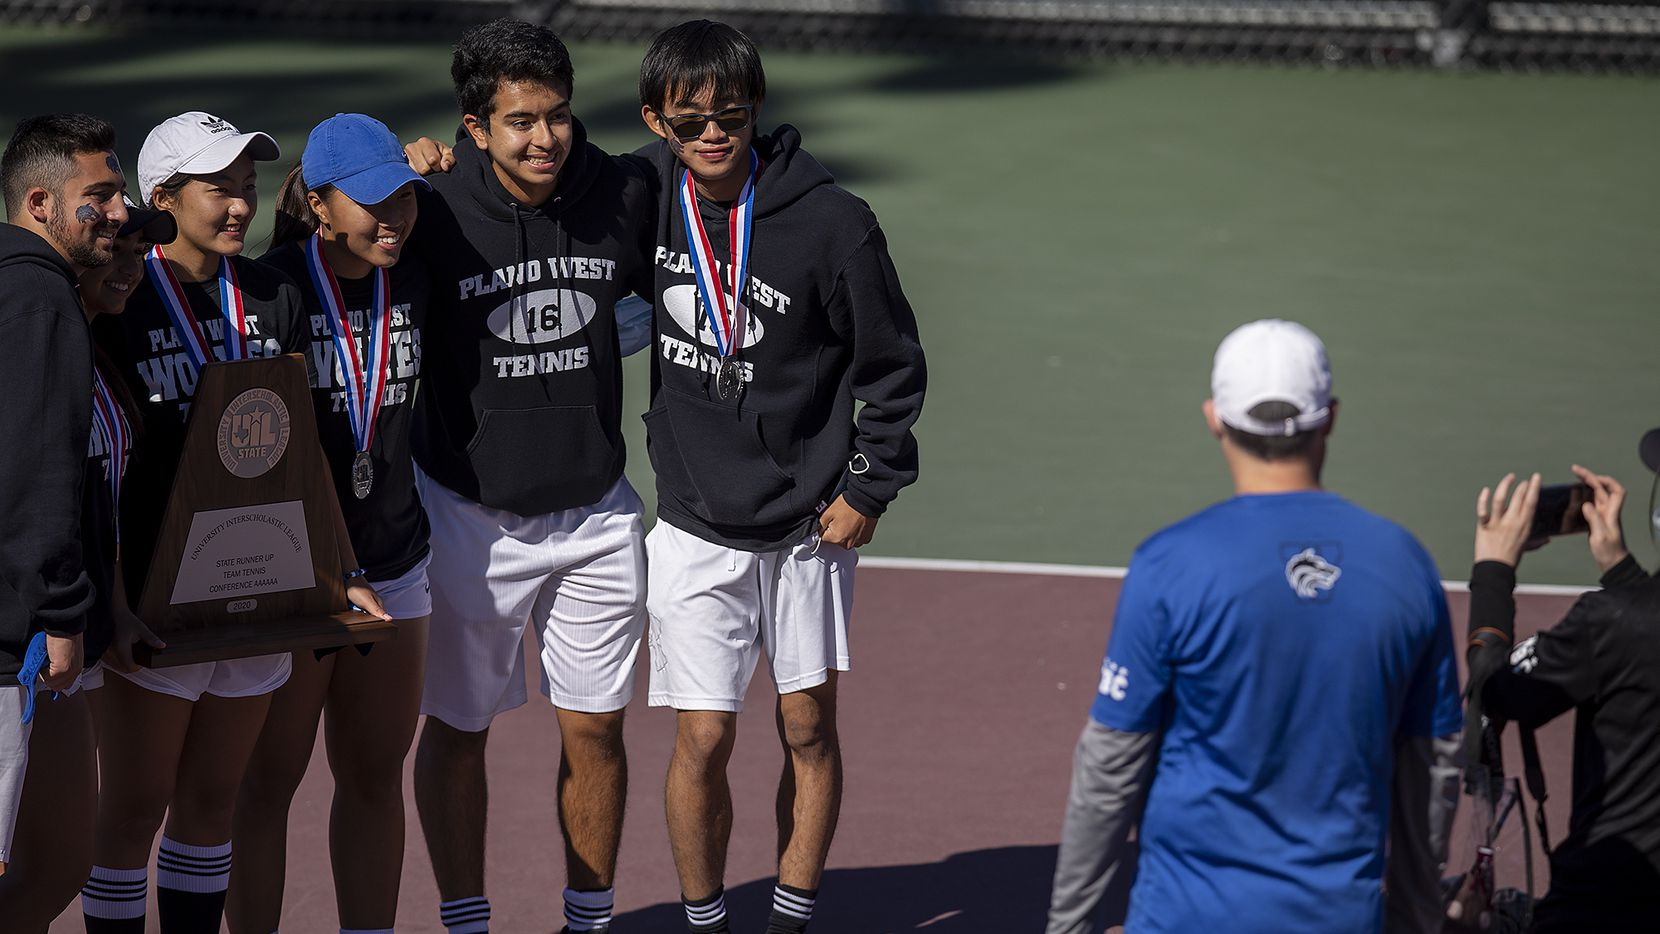 Plano West teammates take a picture with the runner-up trophy after losing the Class 6A team tennis state championship against Round Rock Westwood at Texas A&M's George P. Mitchell Tennis Center in College Station on Tuesday, Nov. 17, 2020.